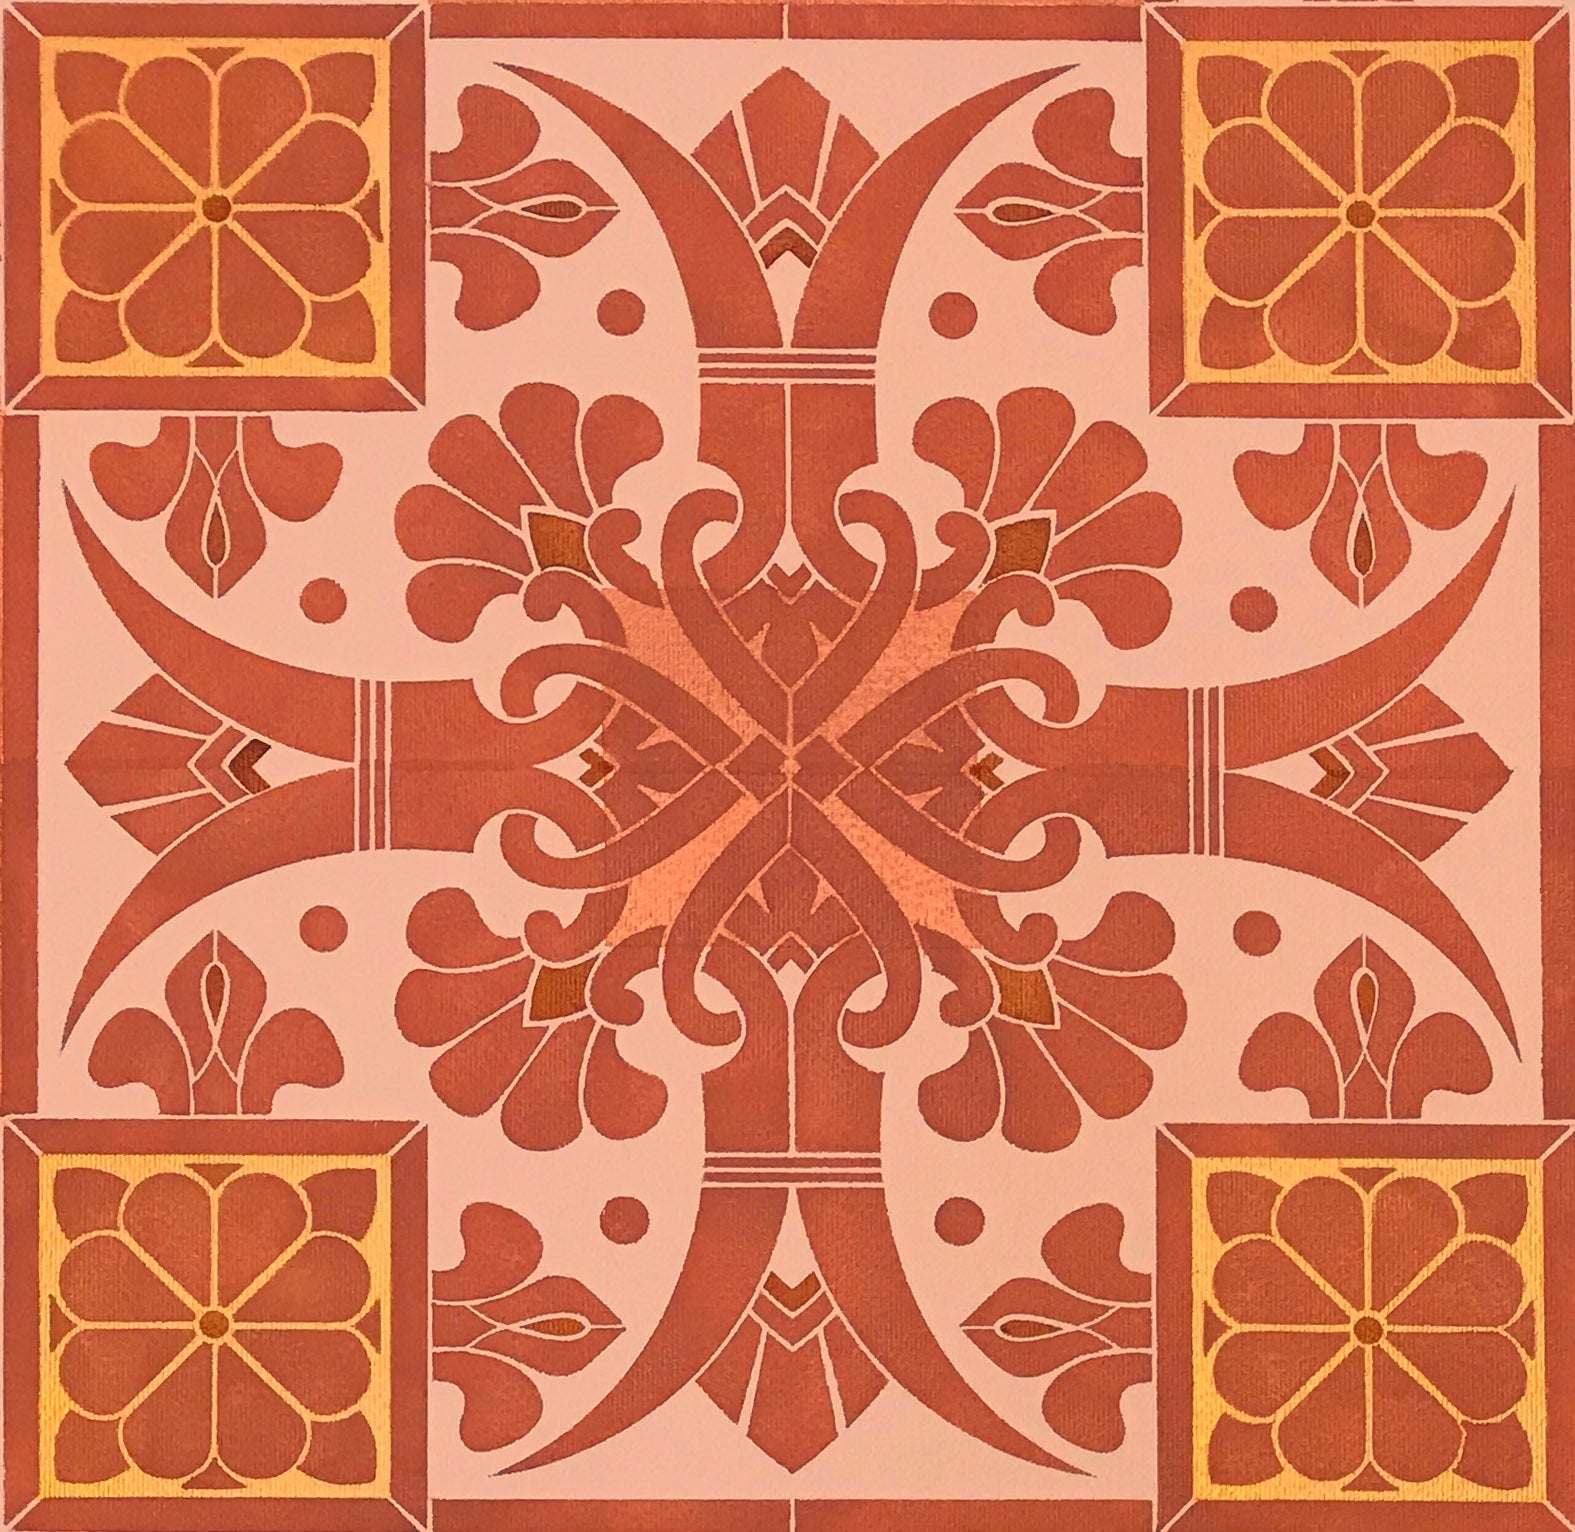 A close-up image of the stylized fleur de lis elements of this floorcloth pattern.